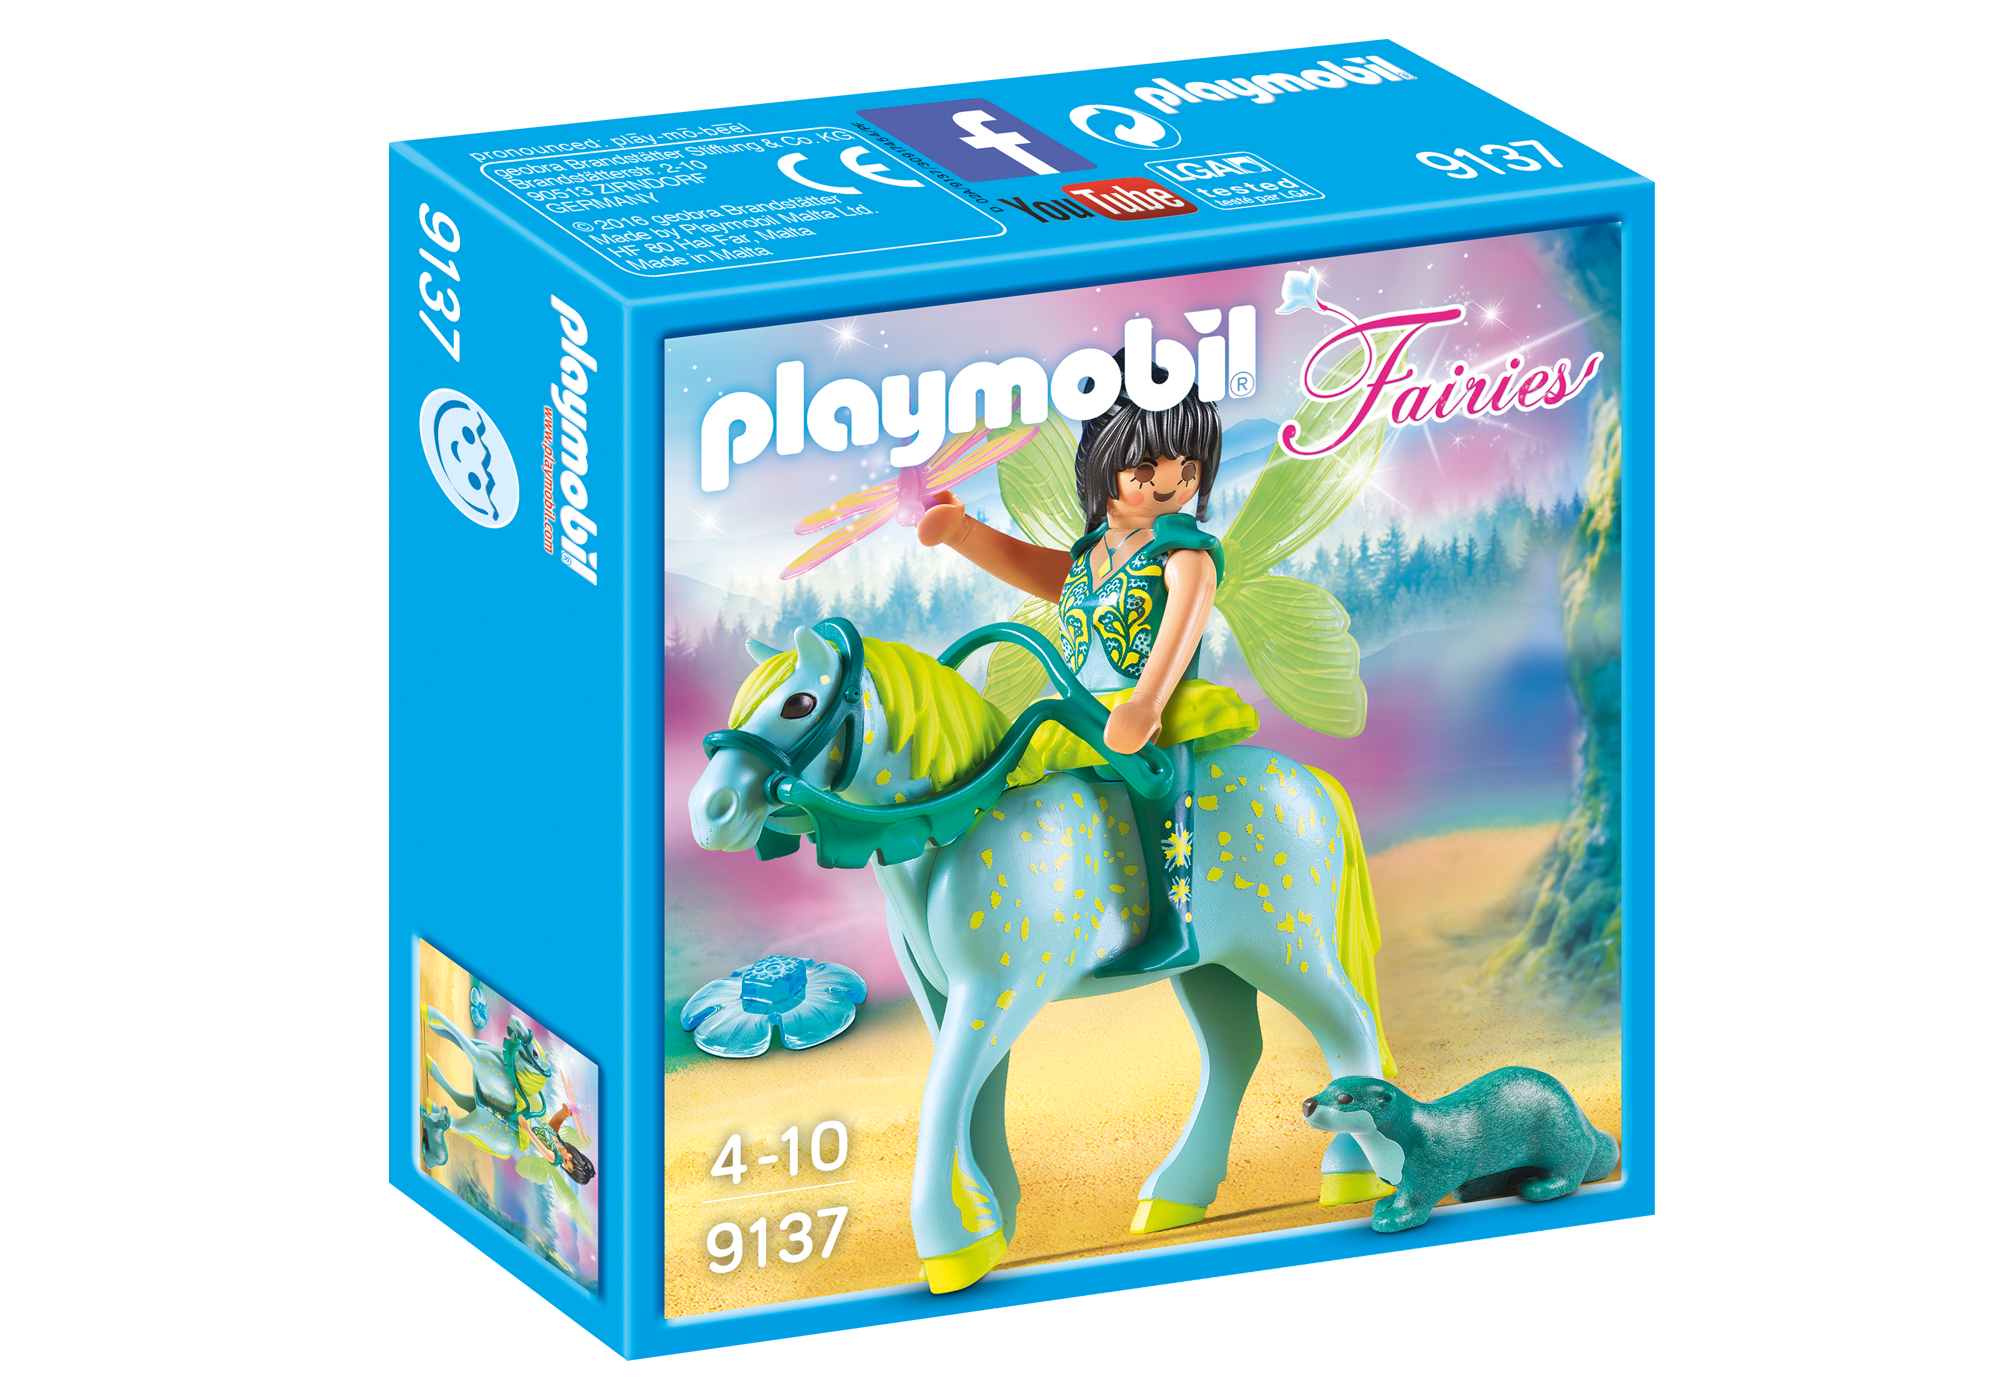 http://media.playmobil.com/i/playmobil/9137_product_box_front